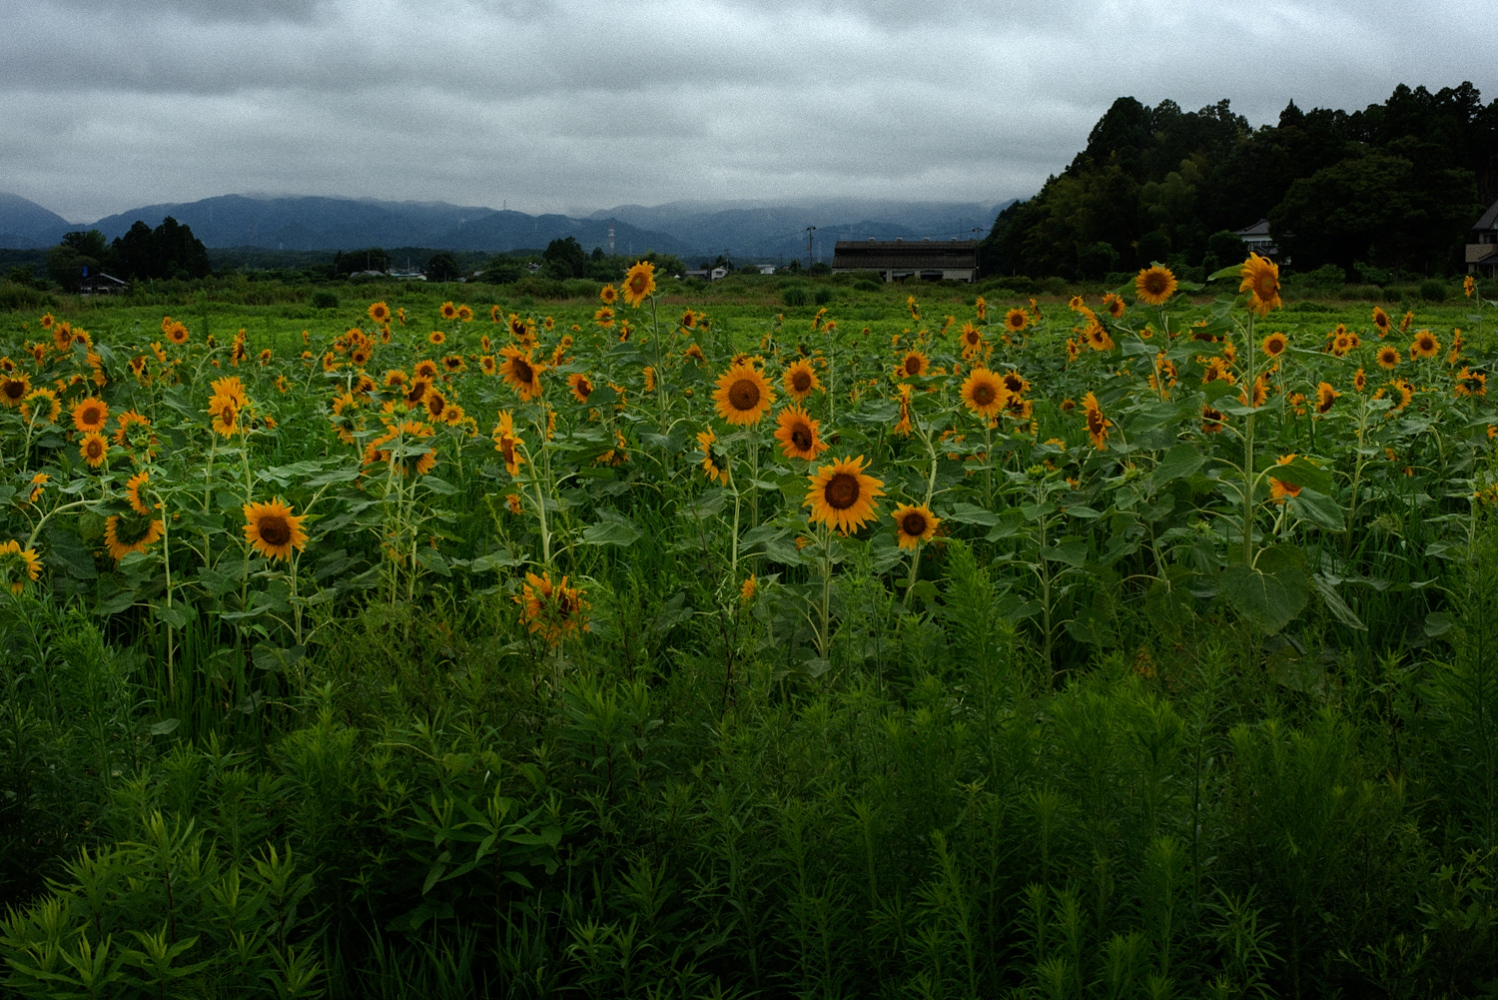 Sun flowers on the garden which Norio Kimura(52) created at his former home inside exclusion zone in Fukushima. His former home is about 4KM south of strcken nuclear power plant.